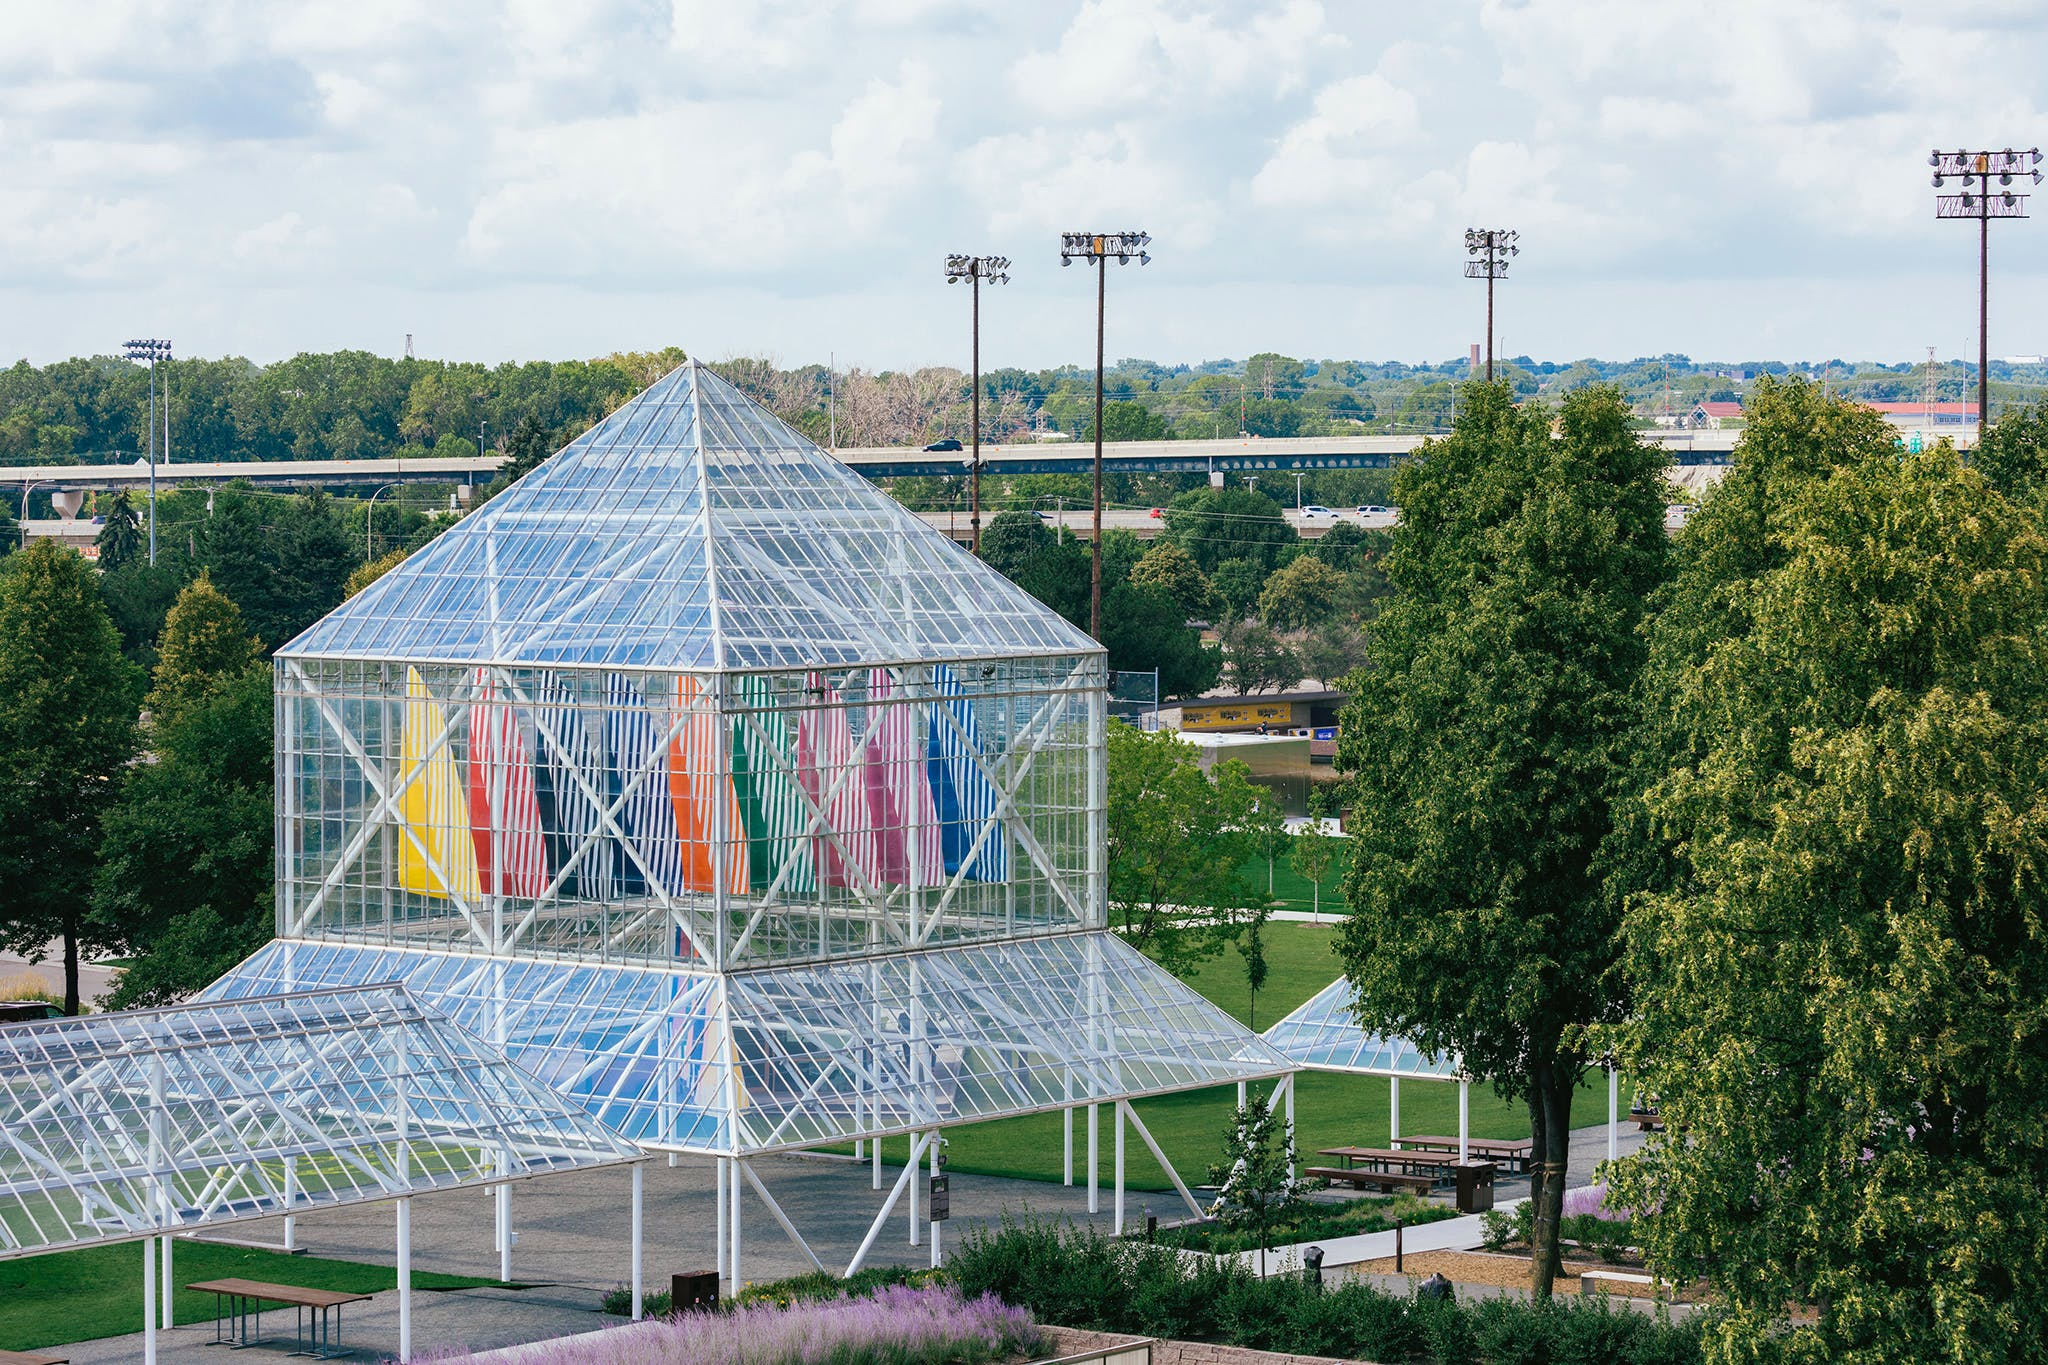 Daniel Buren's sails hanging in the Cowles Pavilion in the Minneapolis Sculpture Garden.